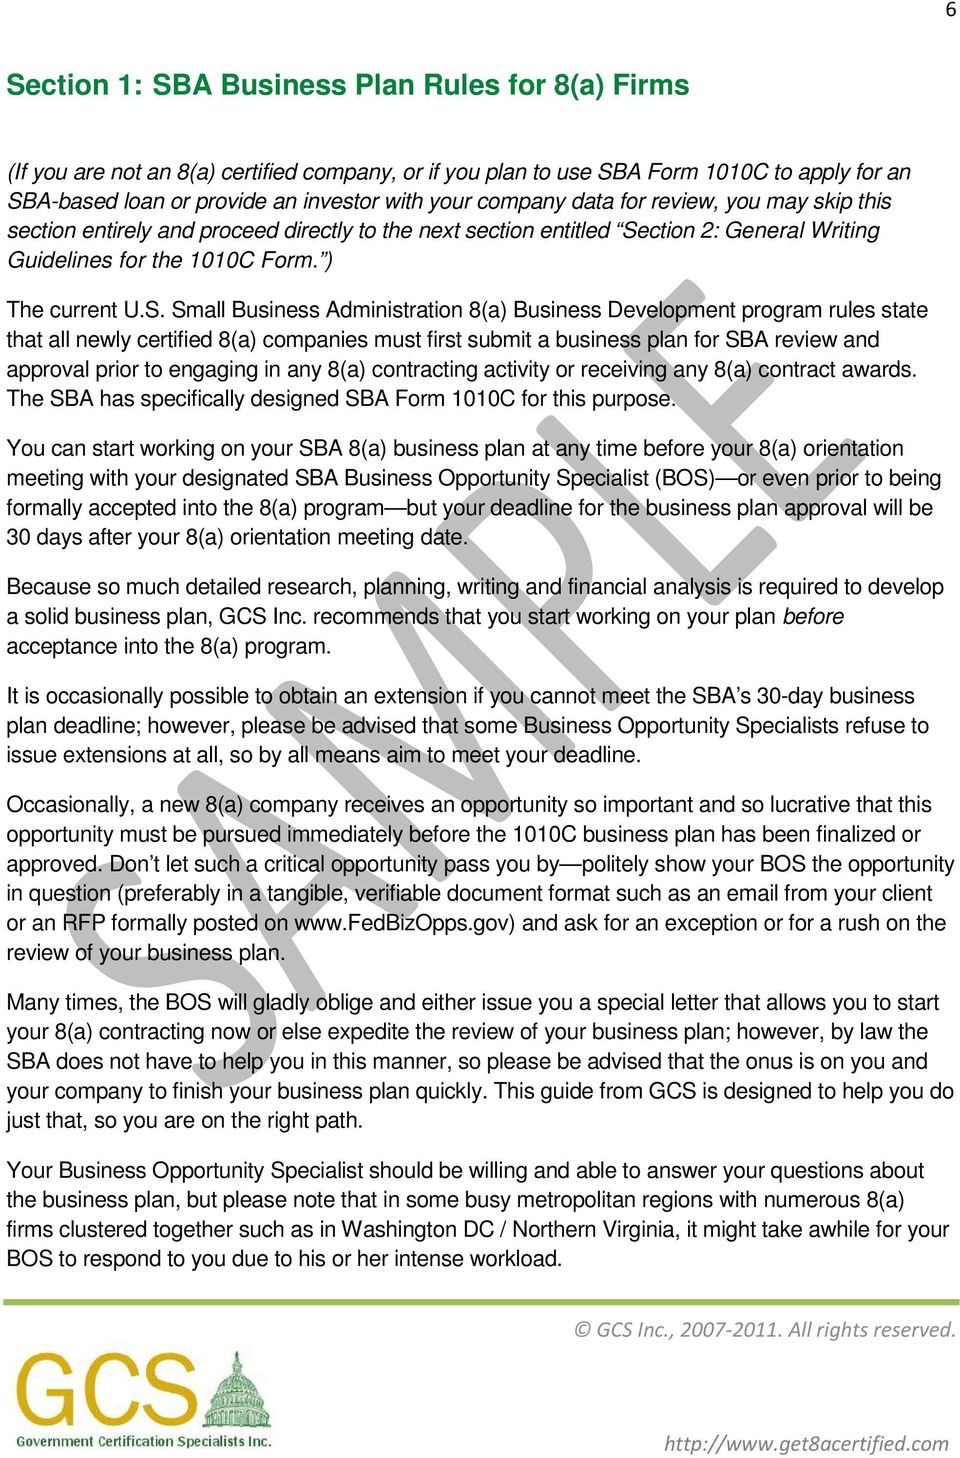 BUSINESS PLAN SBA STATEMENT ON REPRESENTATIVES AND